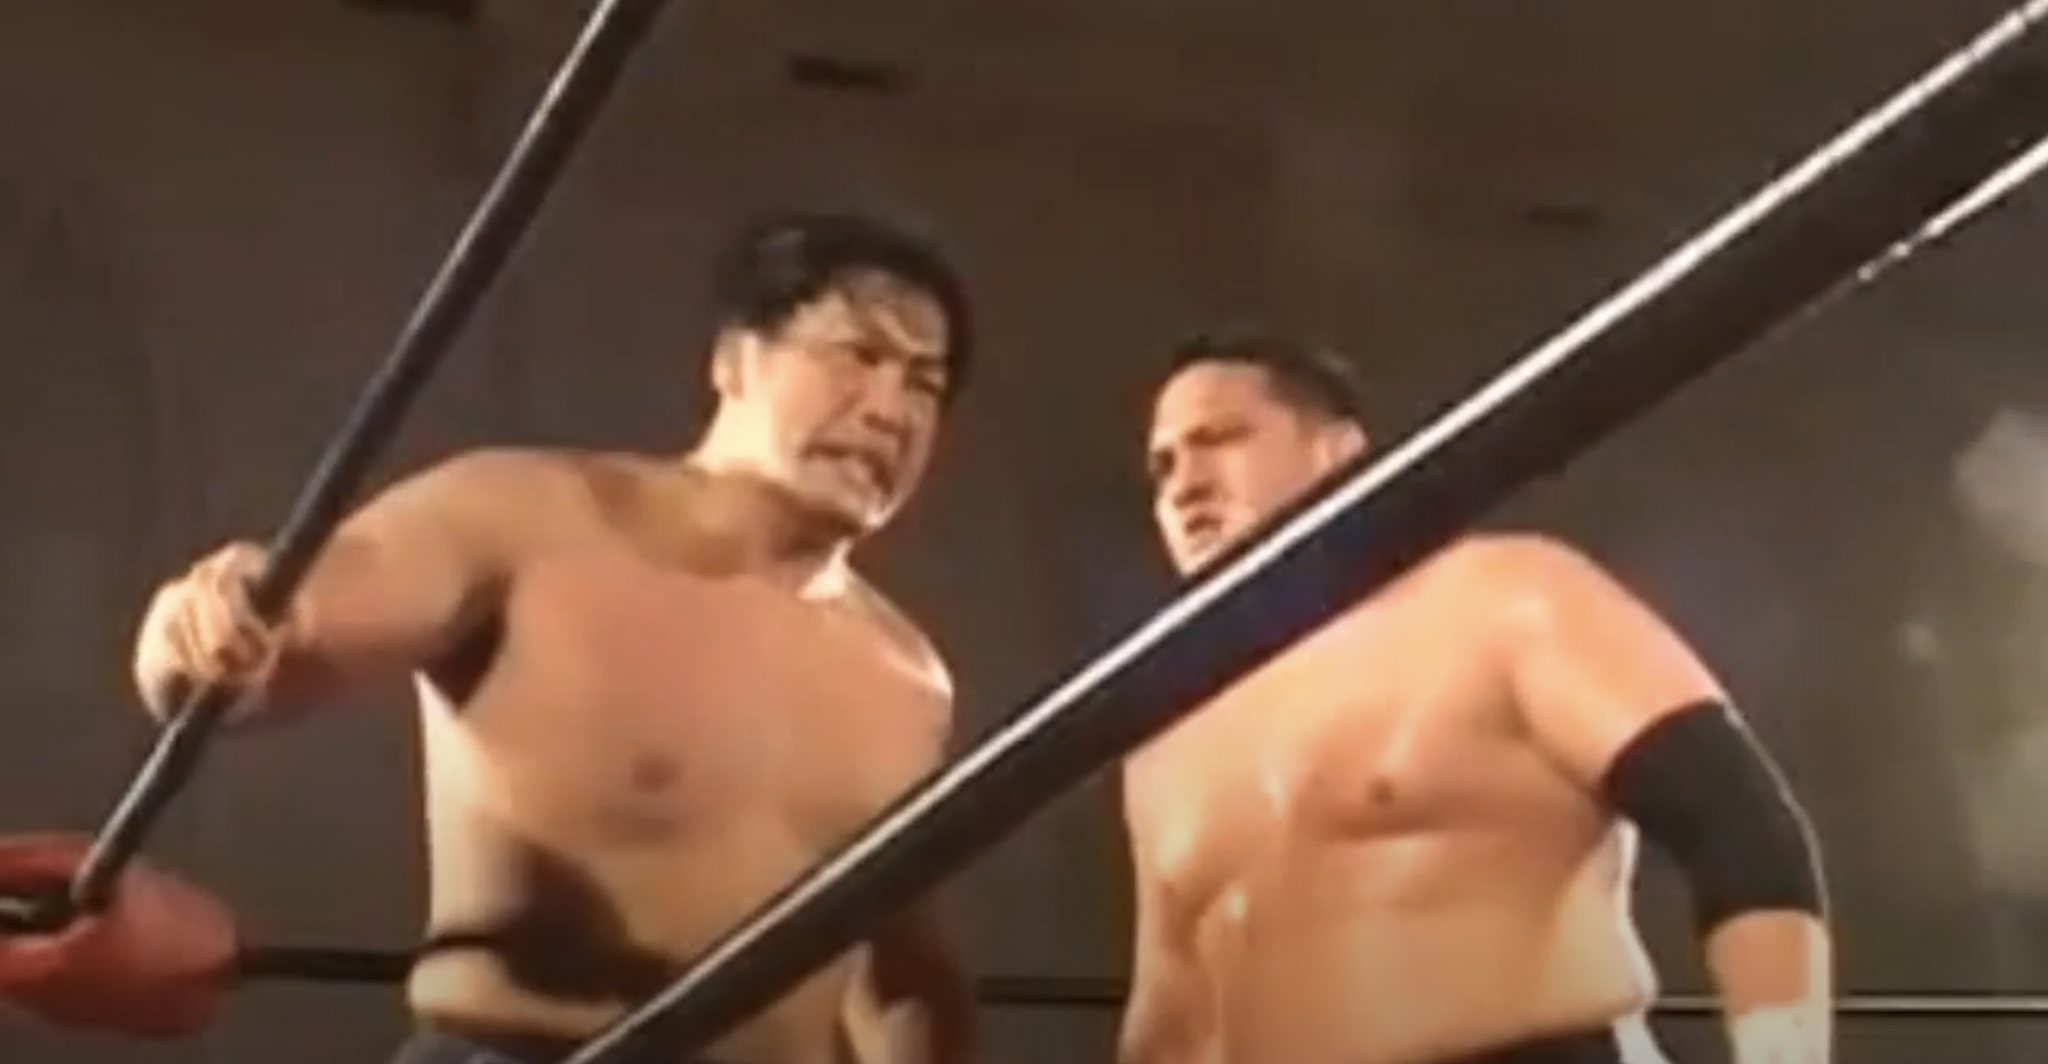 Photo of 15 Years Ago, Samoa Joe and Kenta Kobashi Had The Best U.S. Indie Match Ever